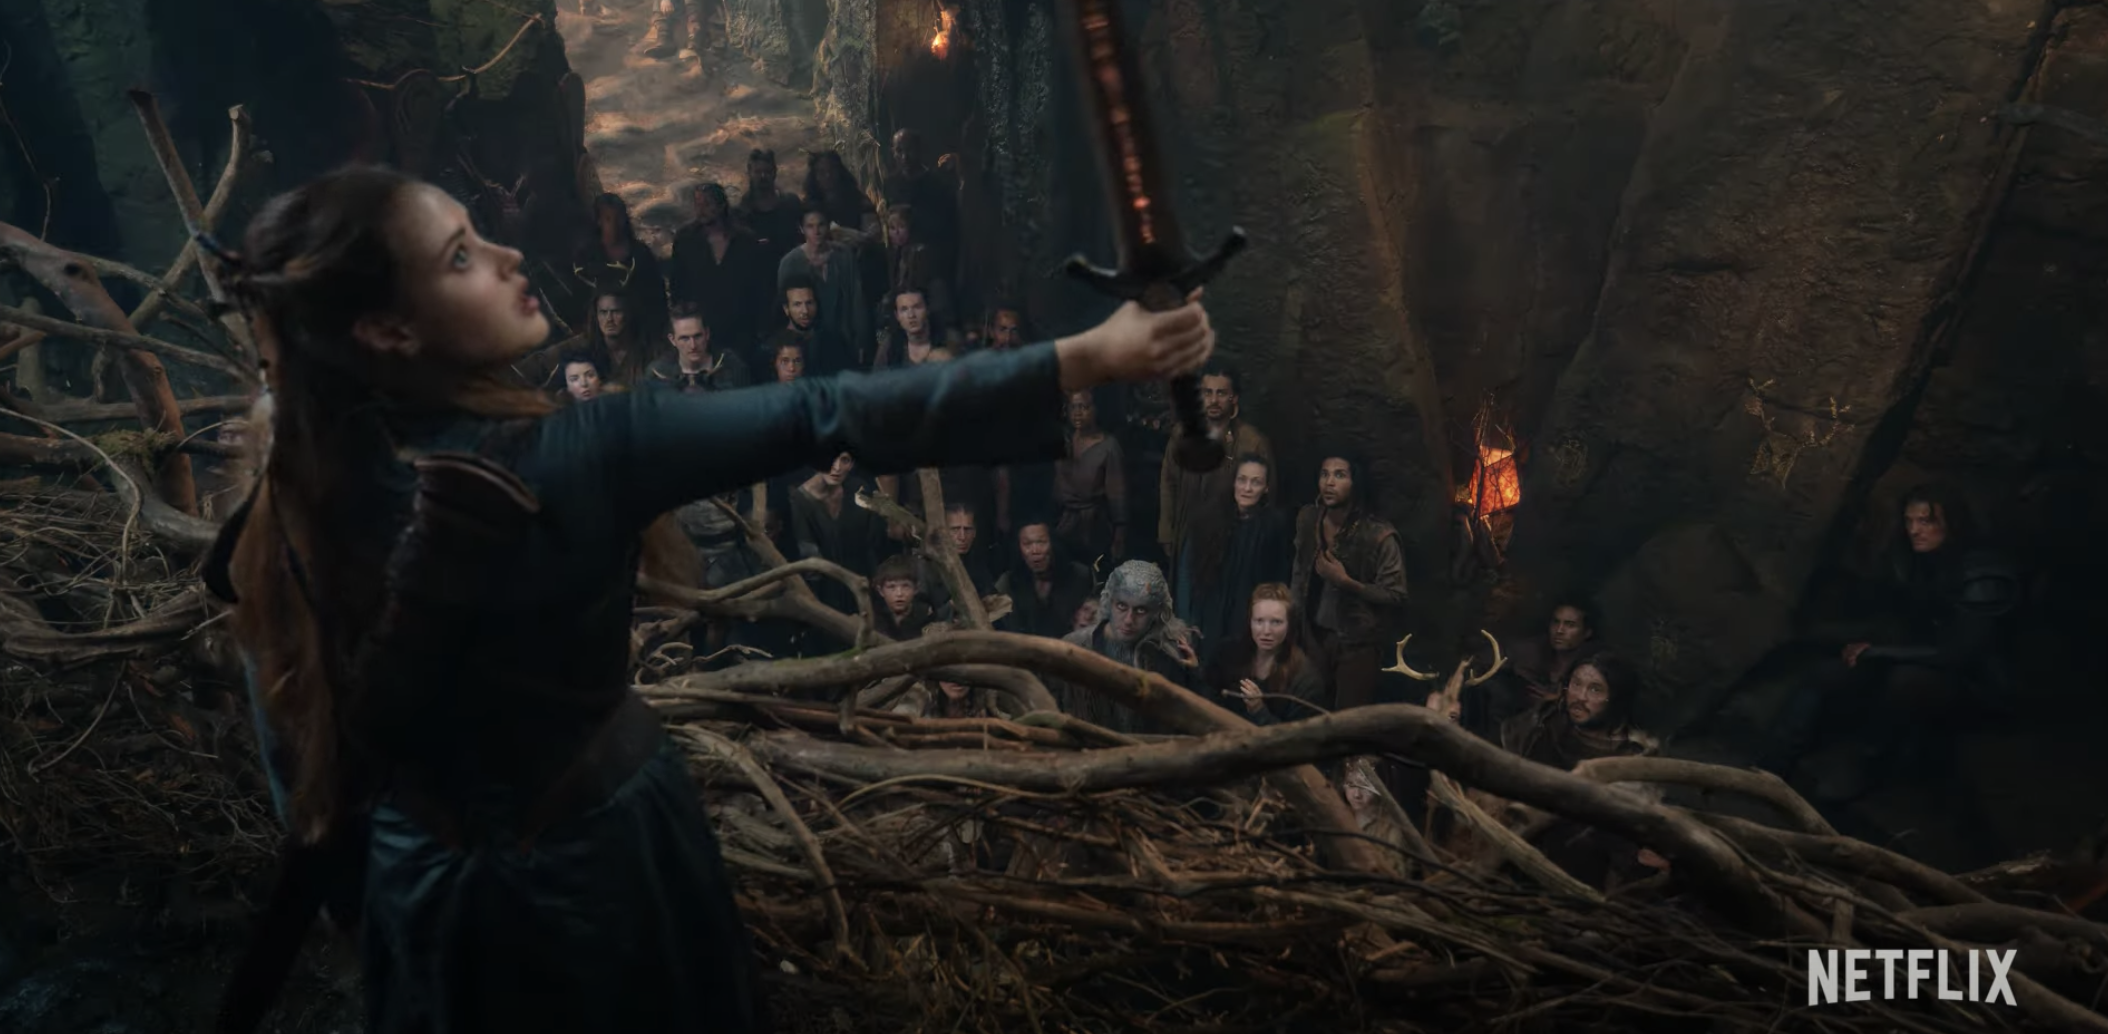 Katherine Langford as Nimue wielding the sword in front of a crowd